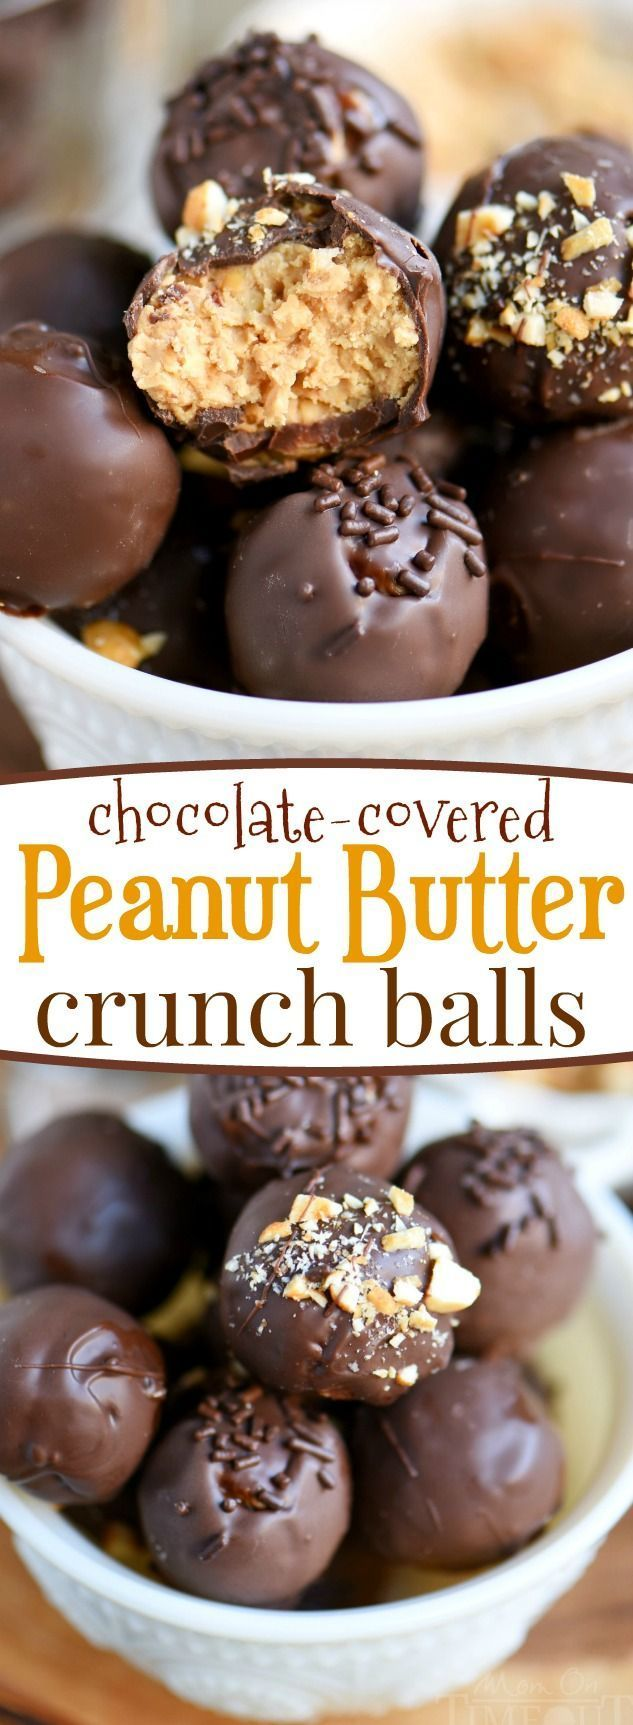 Best 25+ Chocolate covered ideas on Pinterest | Chocolate covered ...